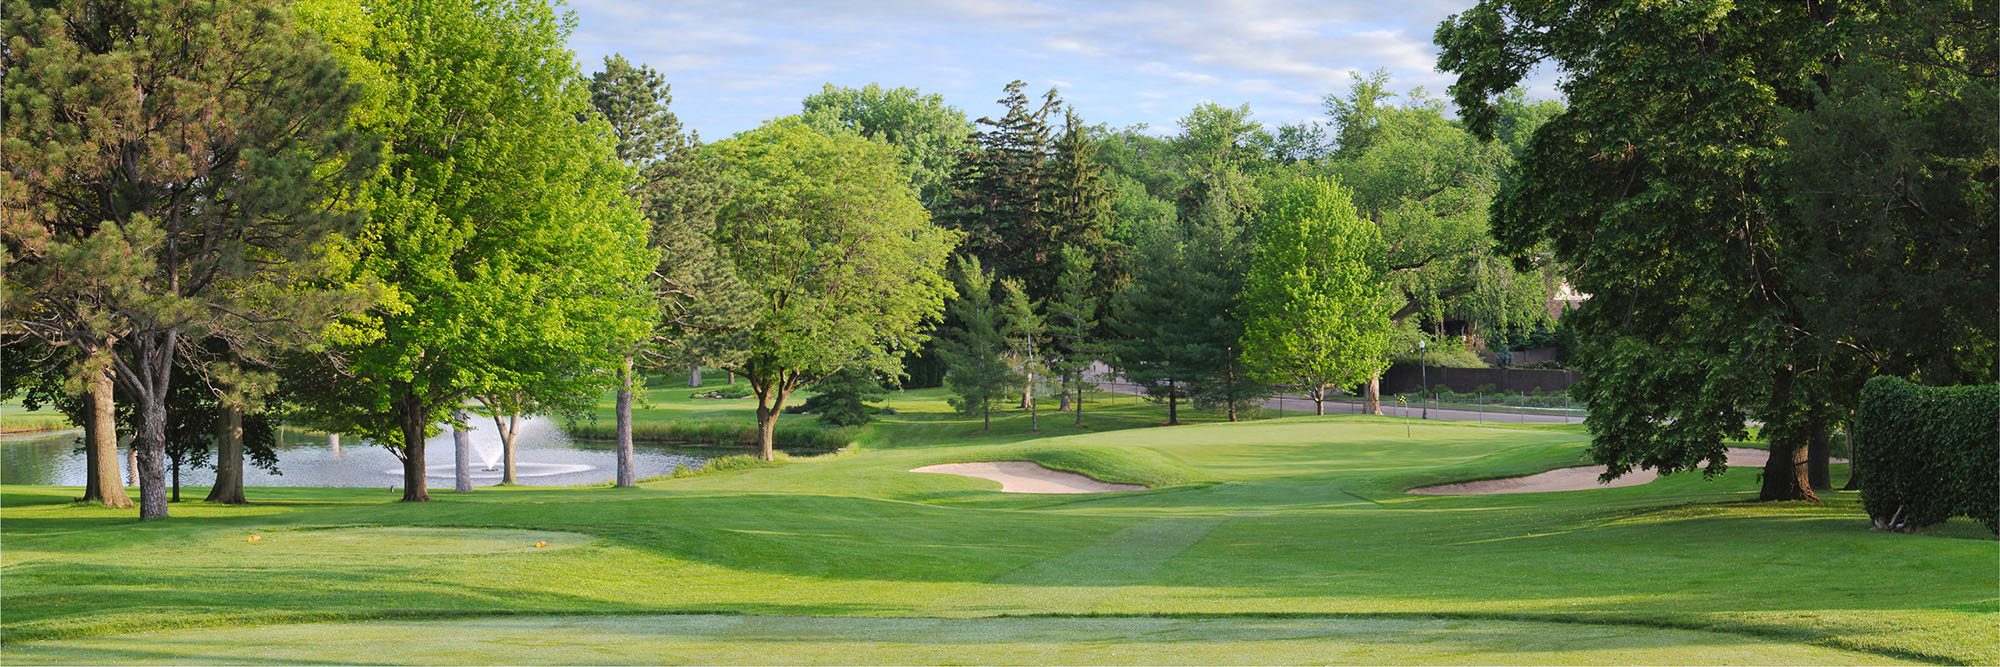 Golf Course Image - Country Club of Lincoln No. 5